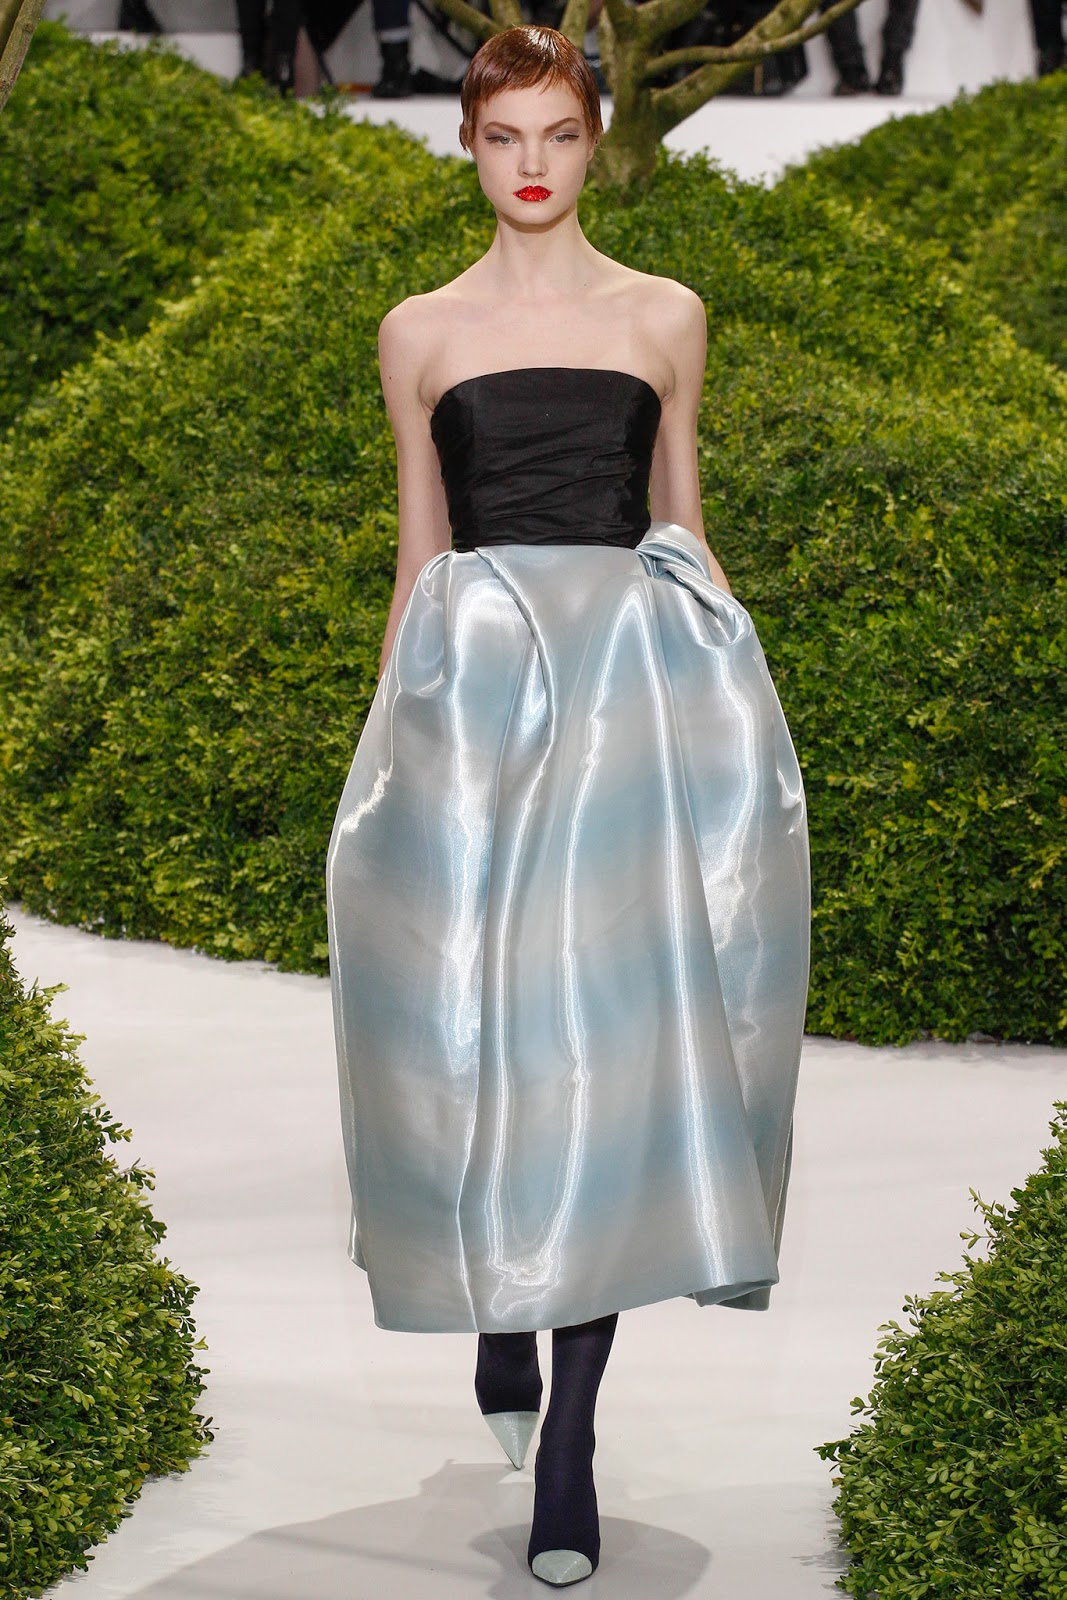 Christian Dior Haute Couture Spring/Summer 2013 (by Raf Simons = RS)